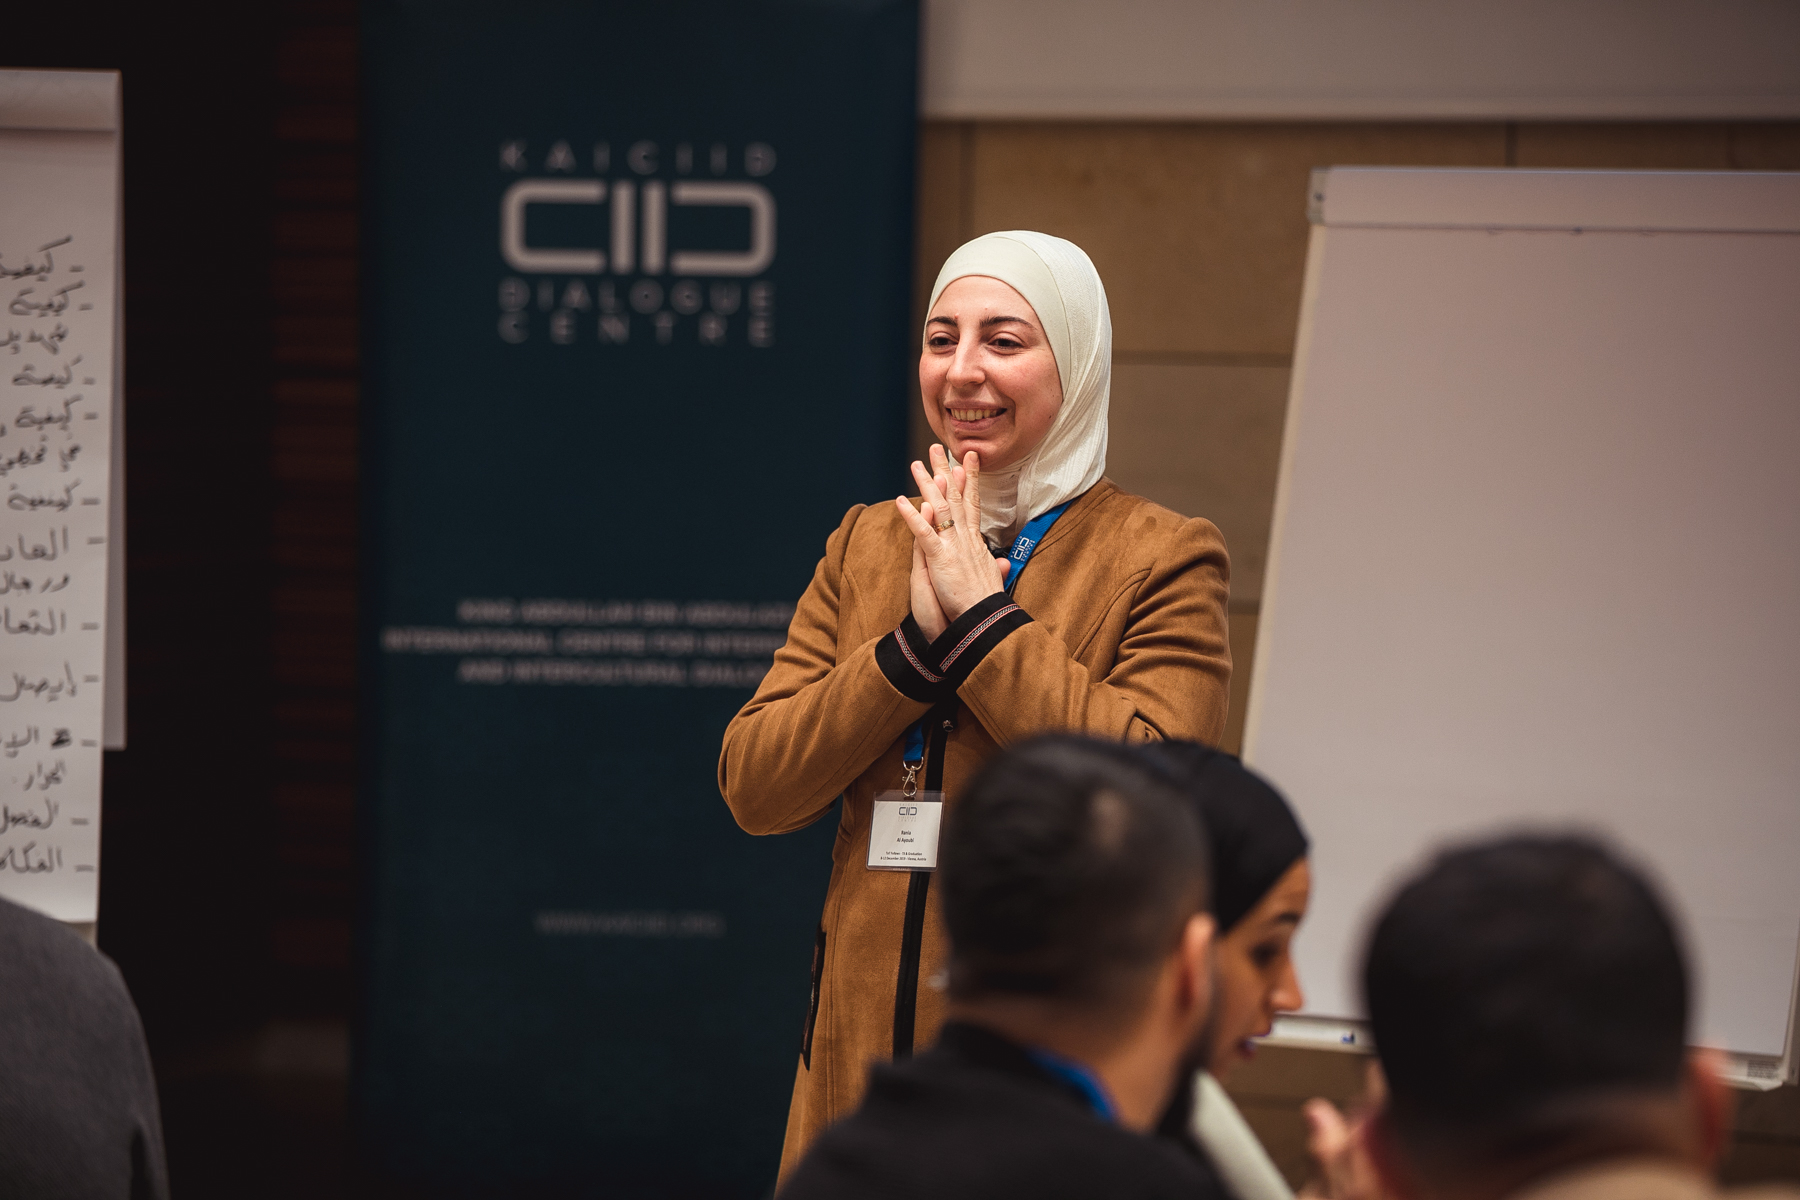 KAICIID Fellow Dr. Rania Alayoubi speaks at a KAICIID training